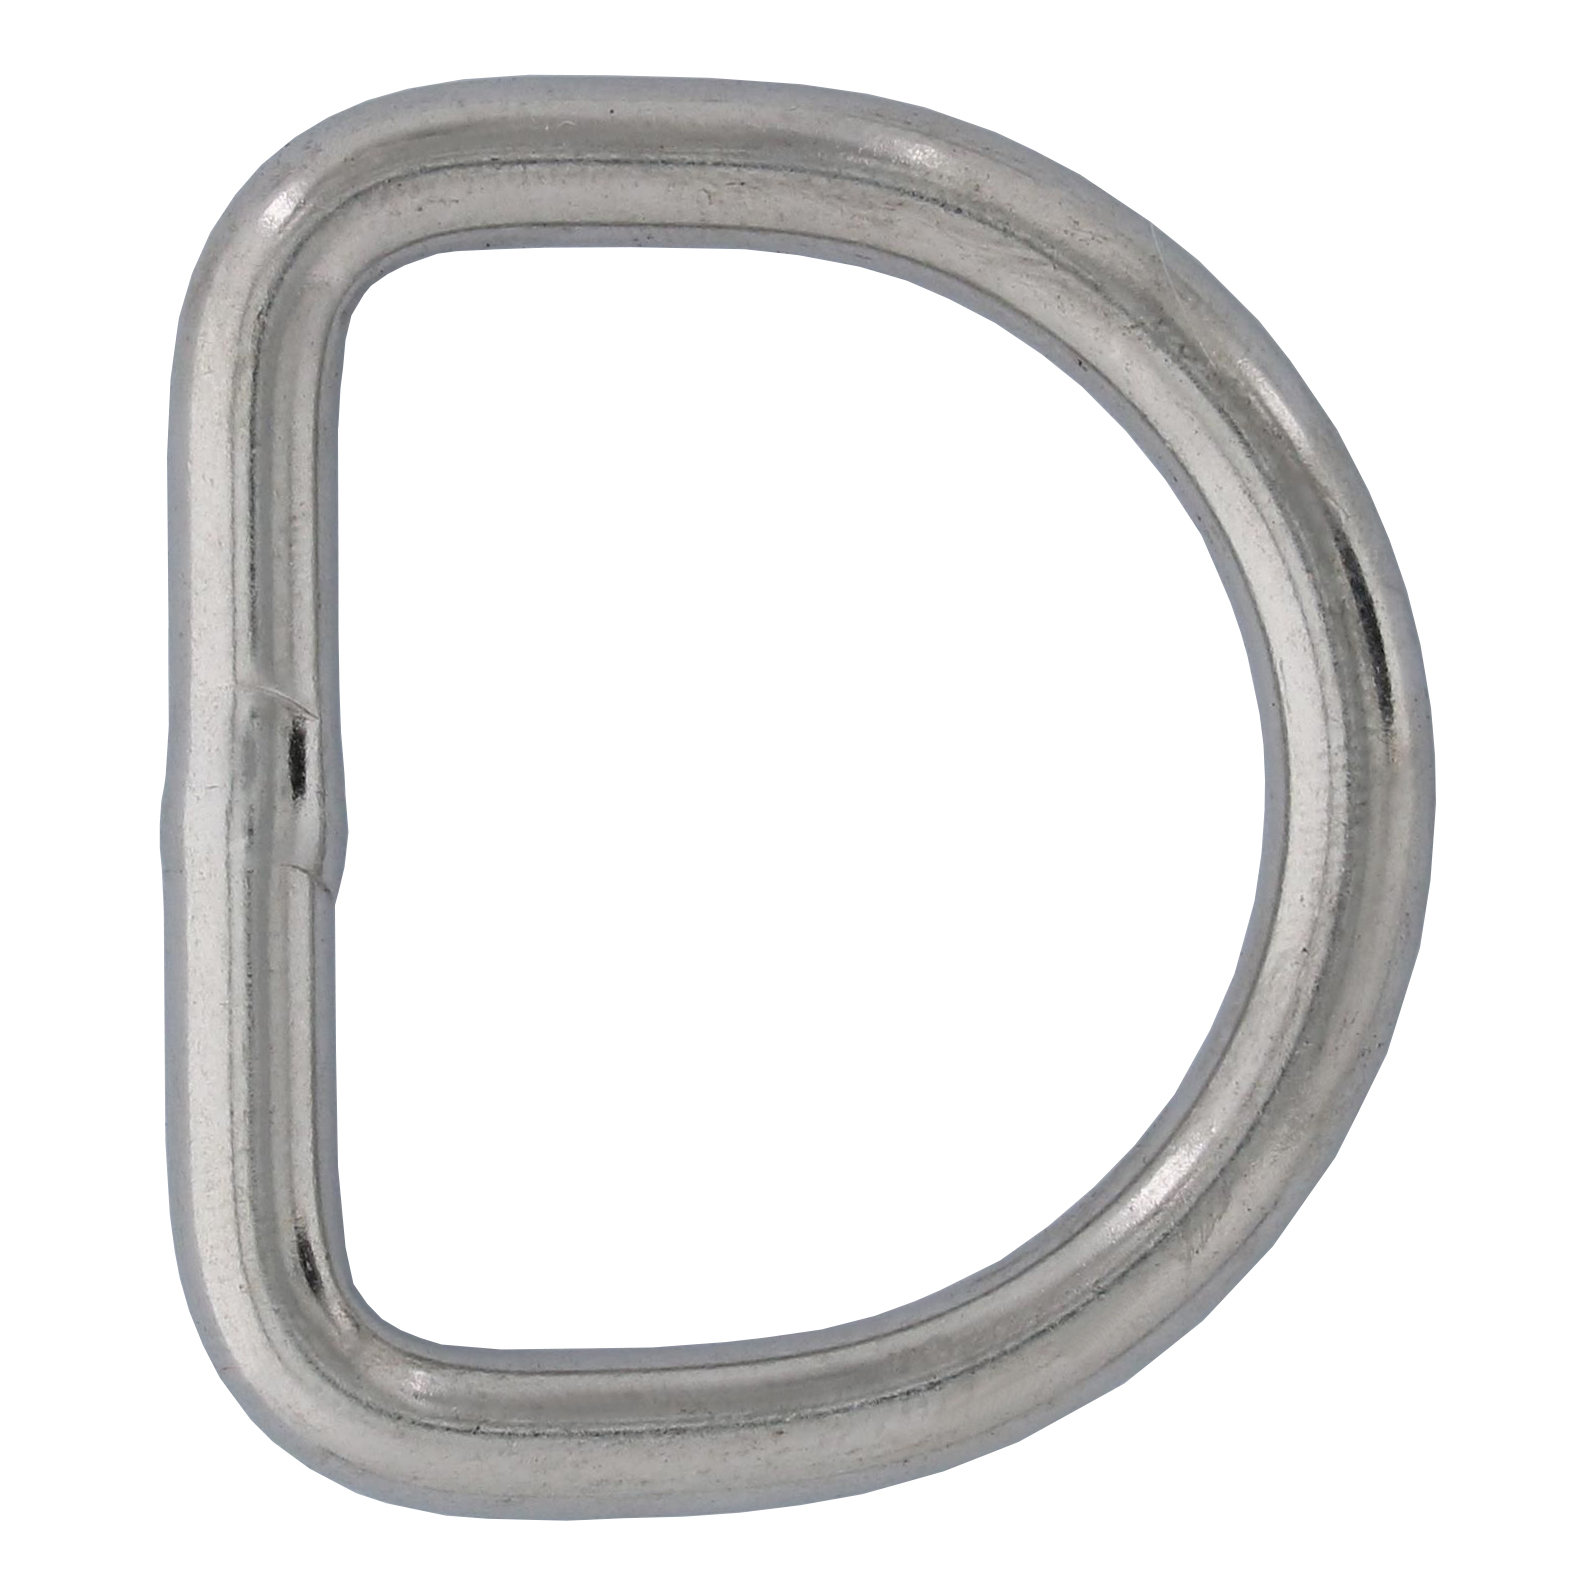 "3/16"" x 1-3/16"" Stainless Steel D Ring Image 1"